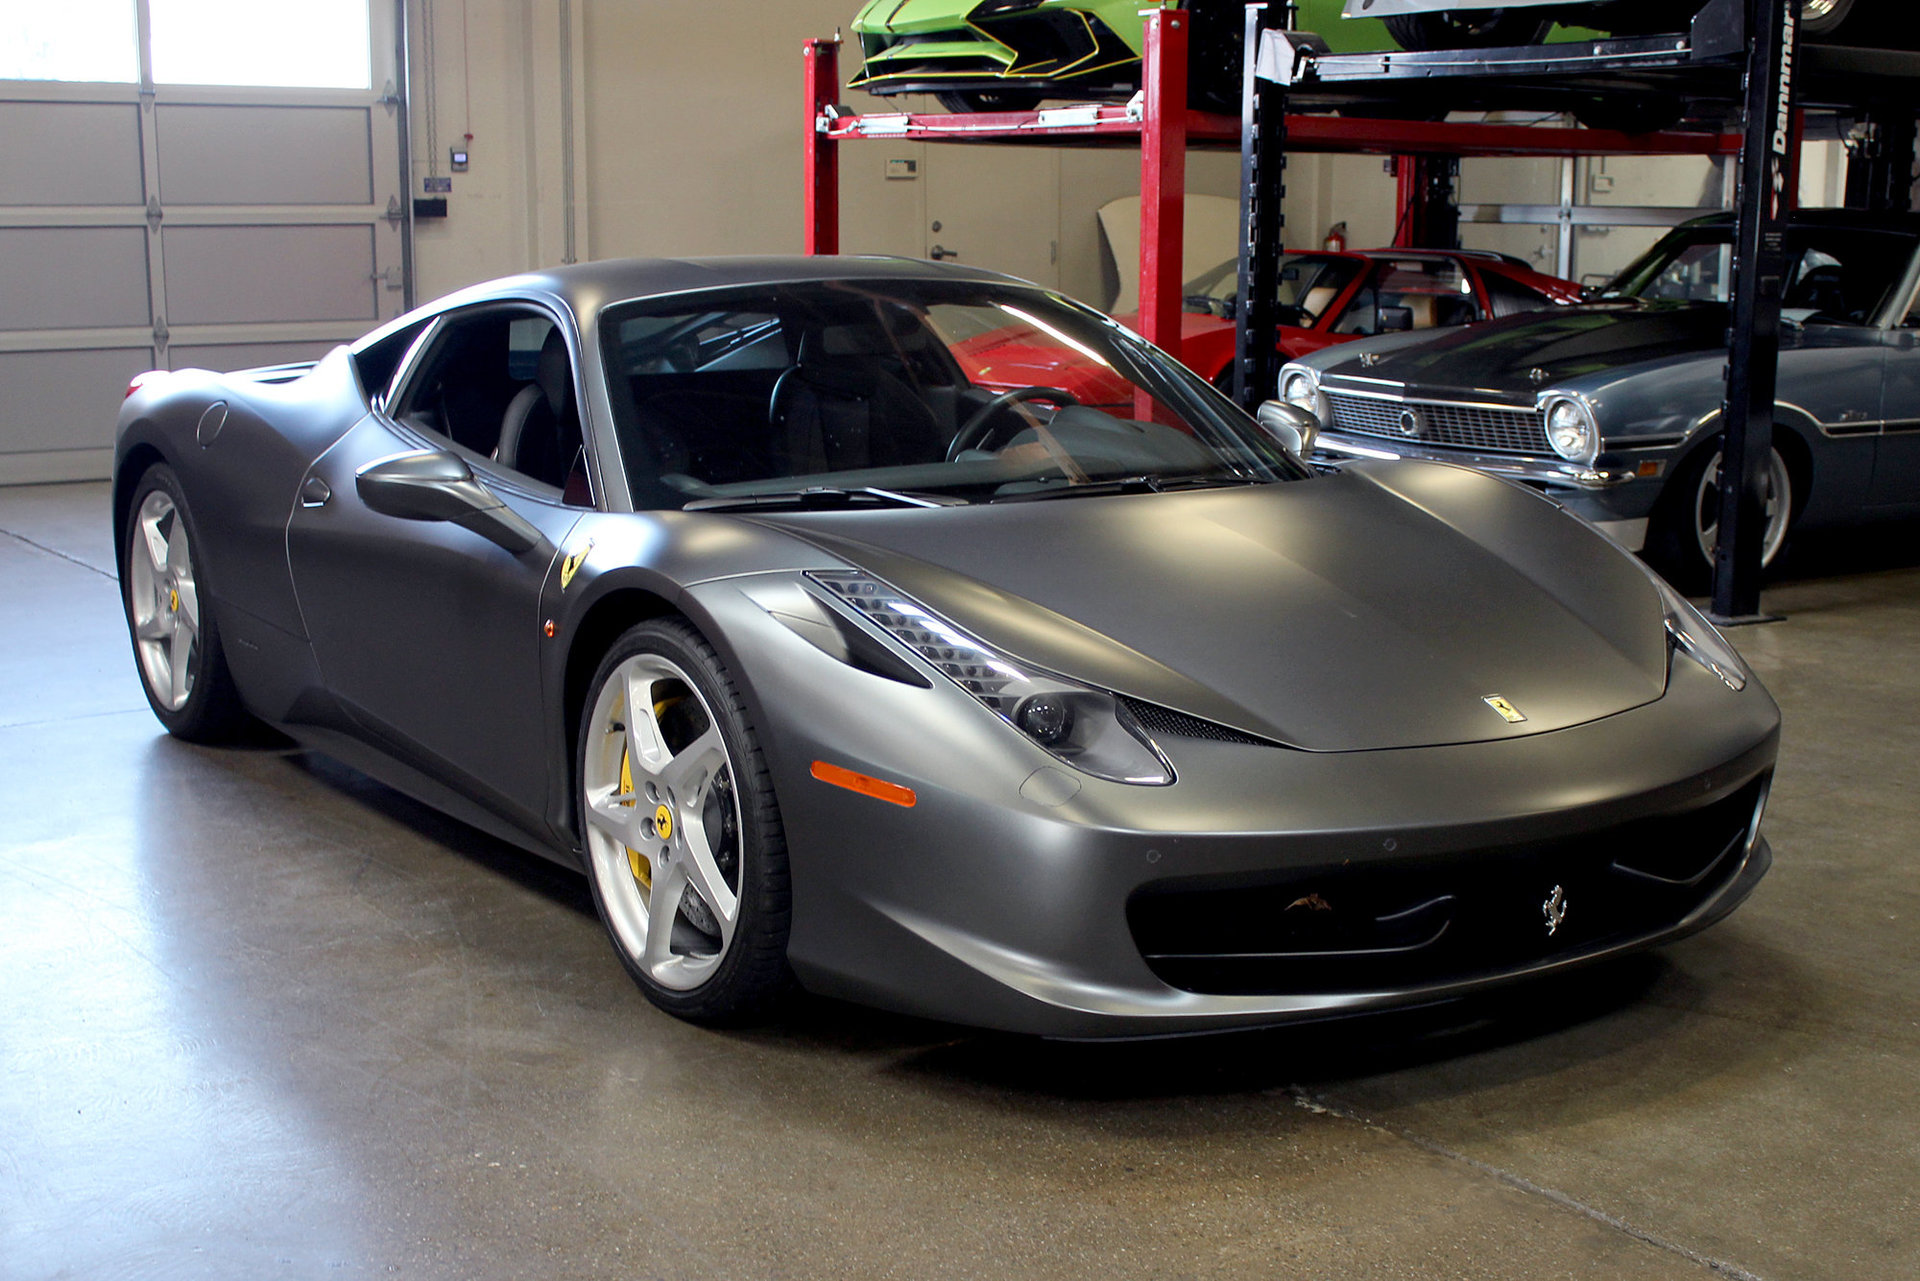 2013 ferrari 458 italia coupe for sale 76065 mcg. Black Bedroom Furniture Sets. Home Design Ideas